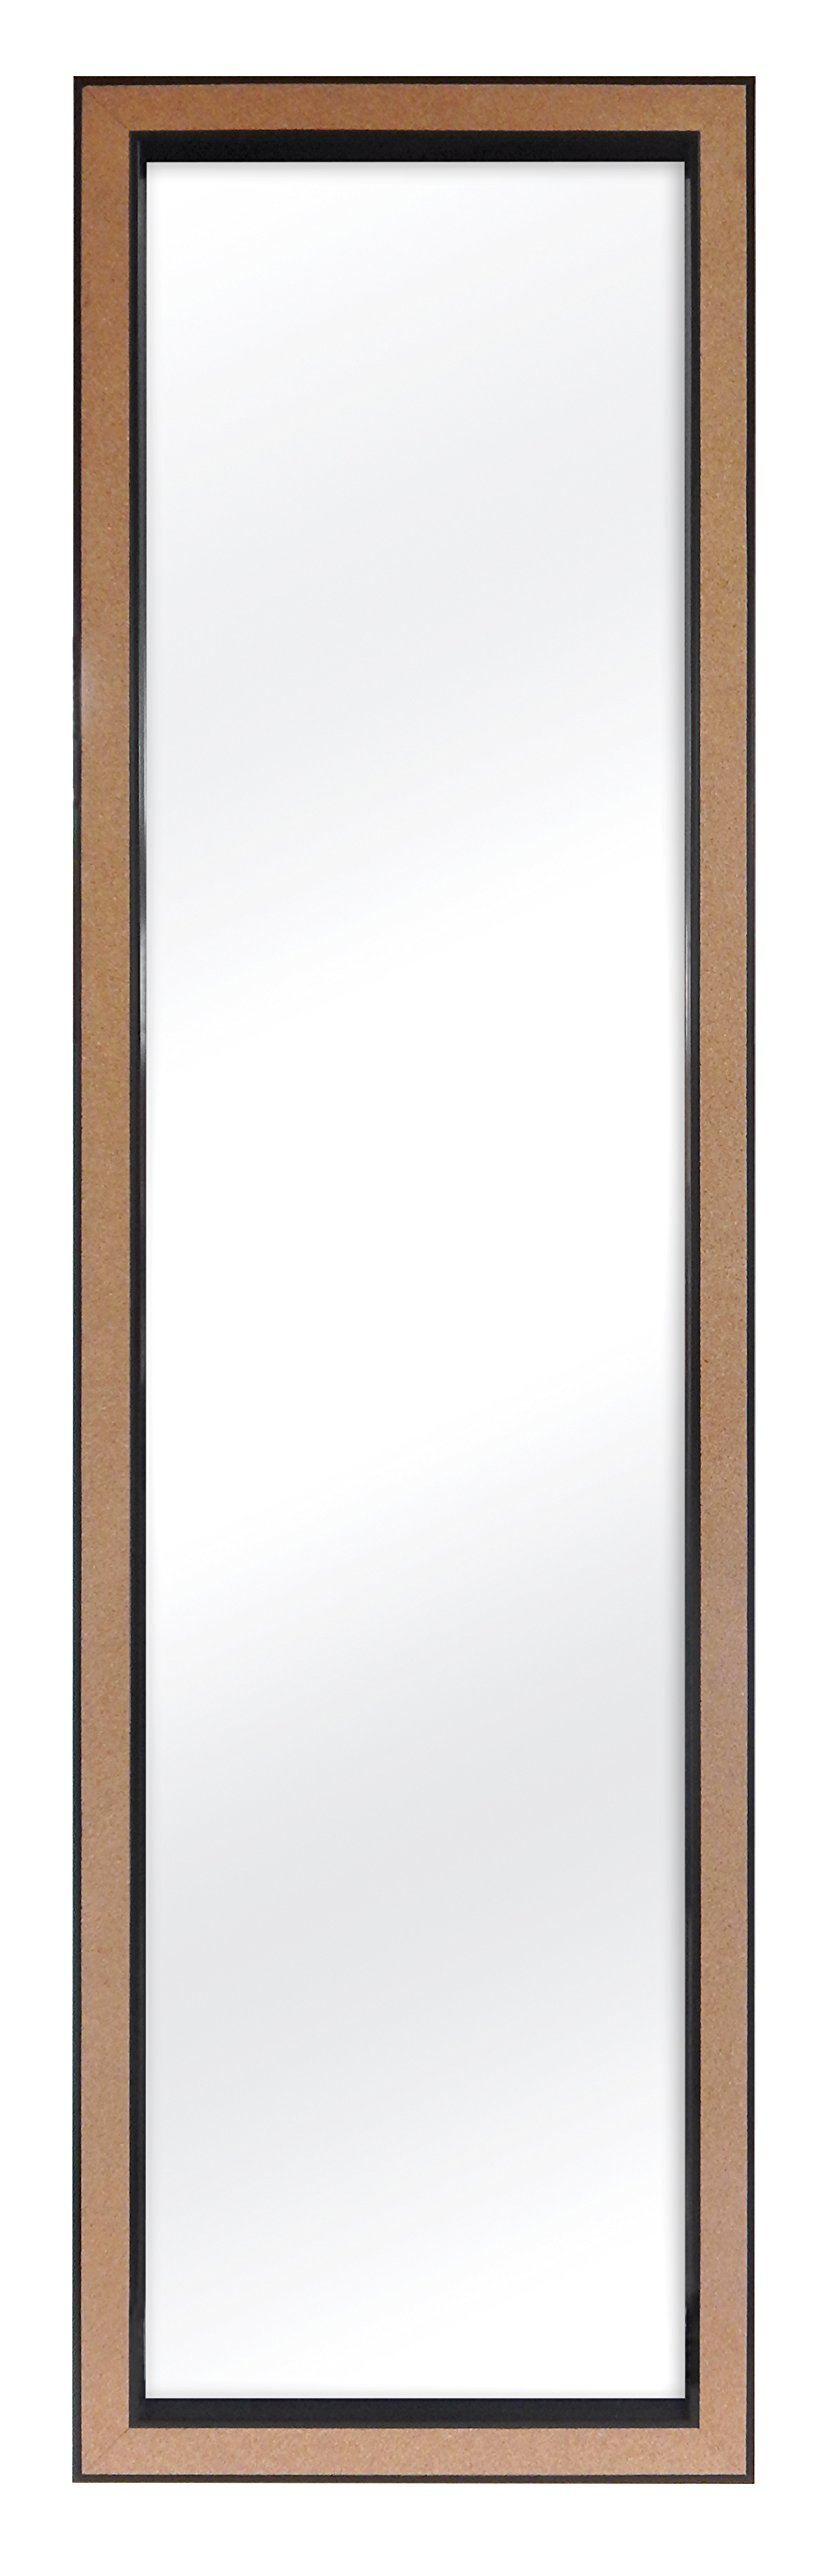 MCS 12x48 Inch Over the Door Mirror with Cork Edge, 14x50 Inch Overall Size, Black (23794)